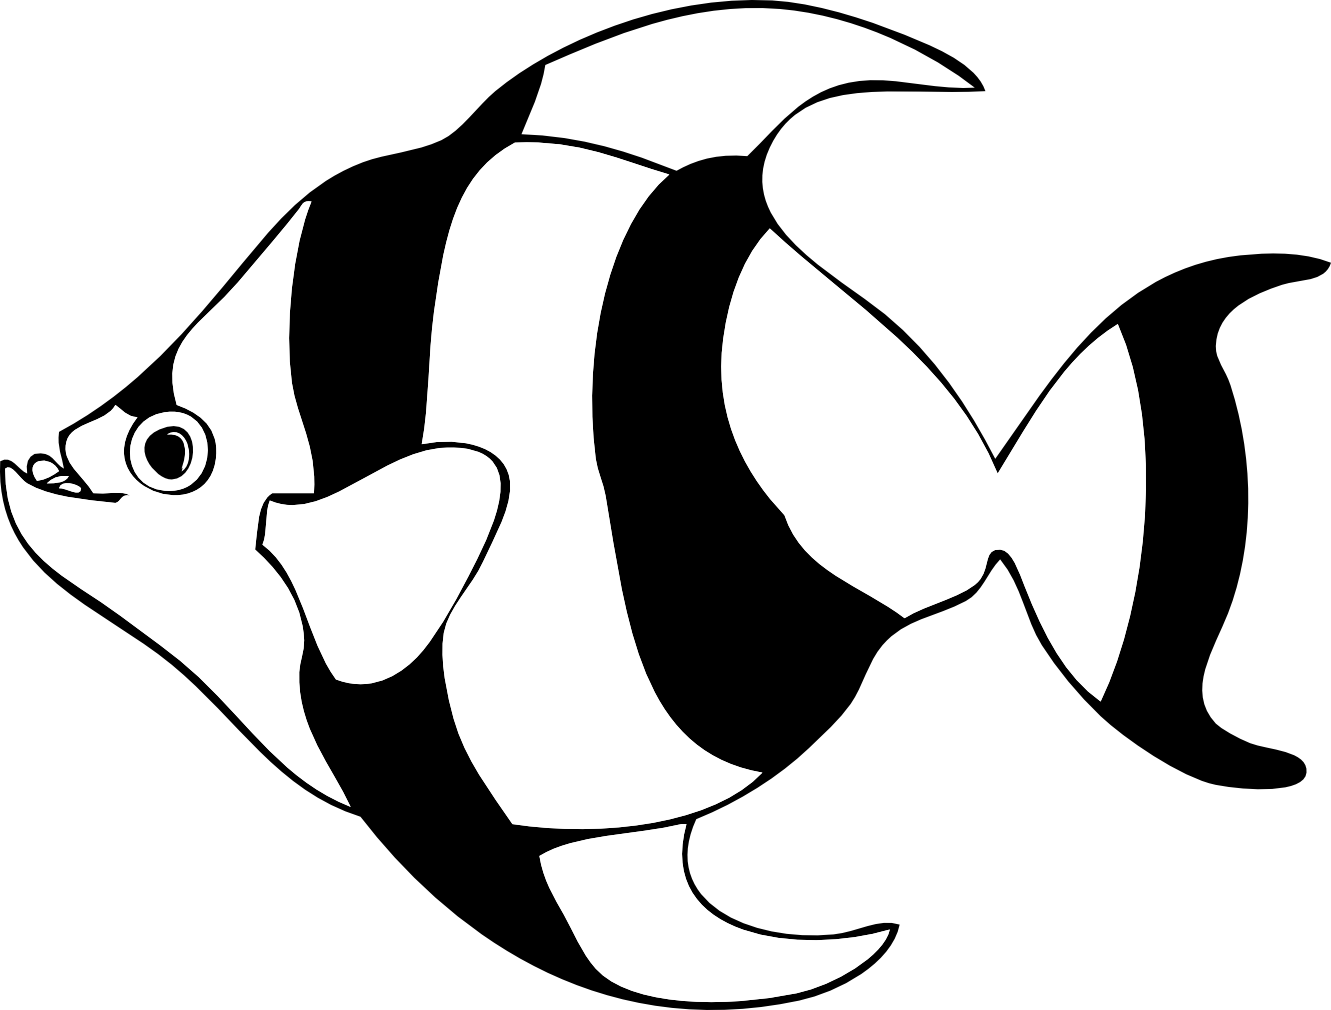 Clipart of a fish bowl clipart transparent stock School Black And White Clipart | Free download best School Black And ... clipart transparent stock